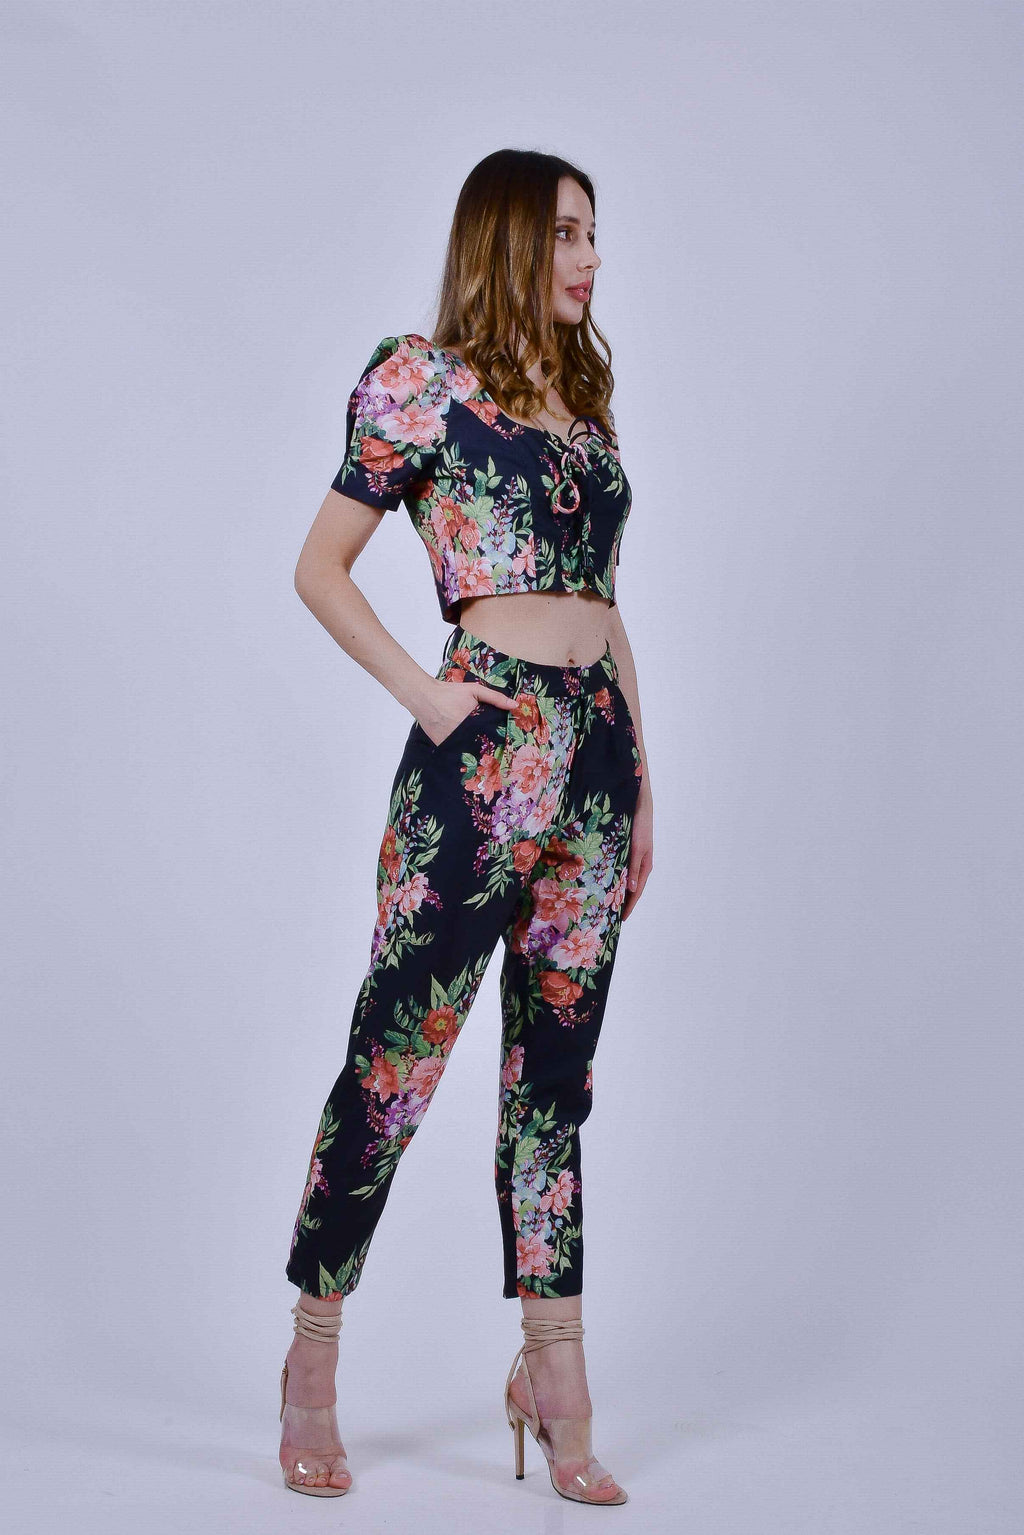 Black Floral Crop Top and Pants